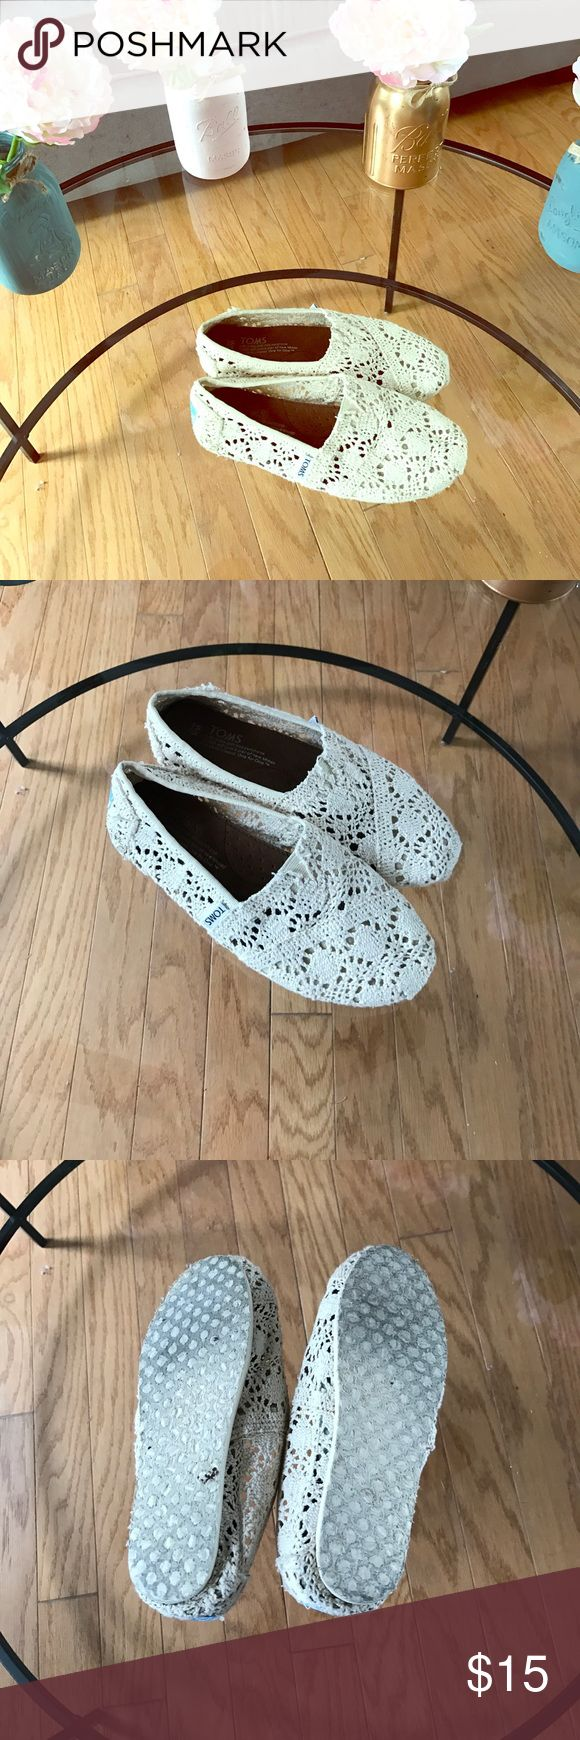 Toms crocheted shoes Some loose strings but that's part of the look. TOMS Shoes Flats & Loafers